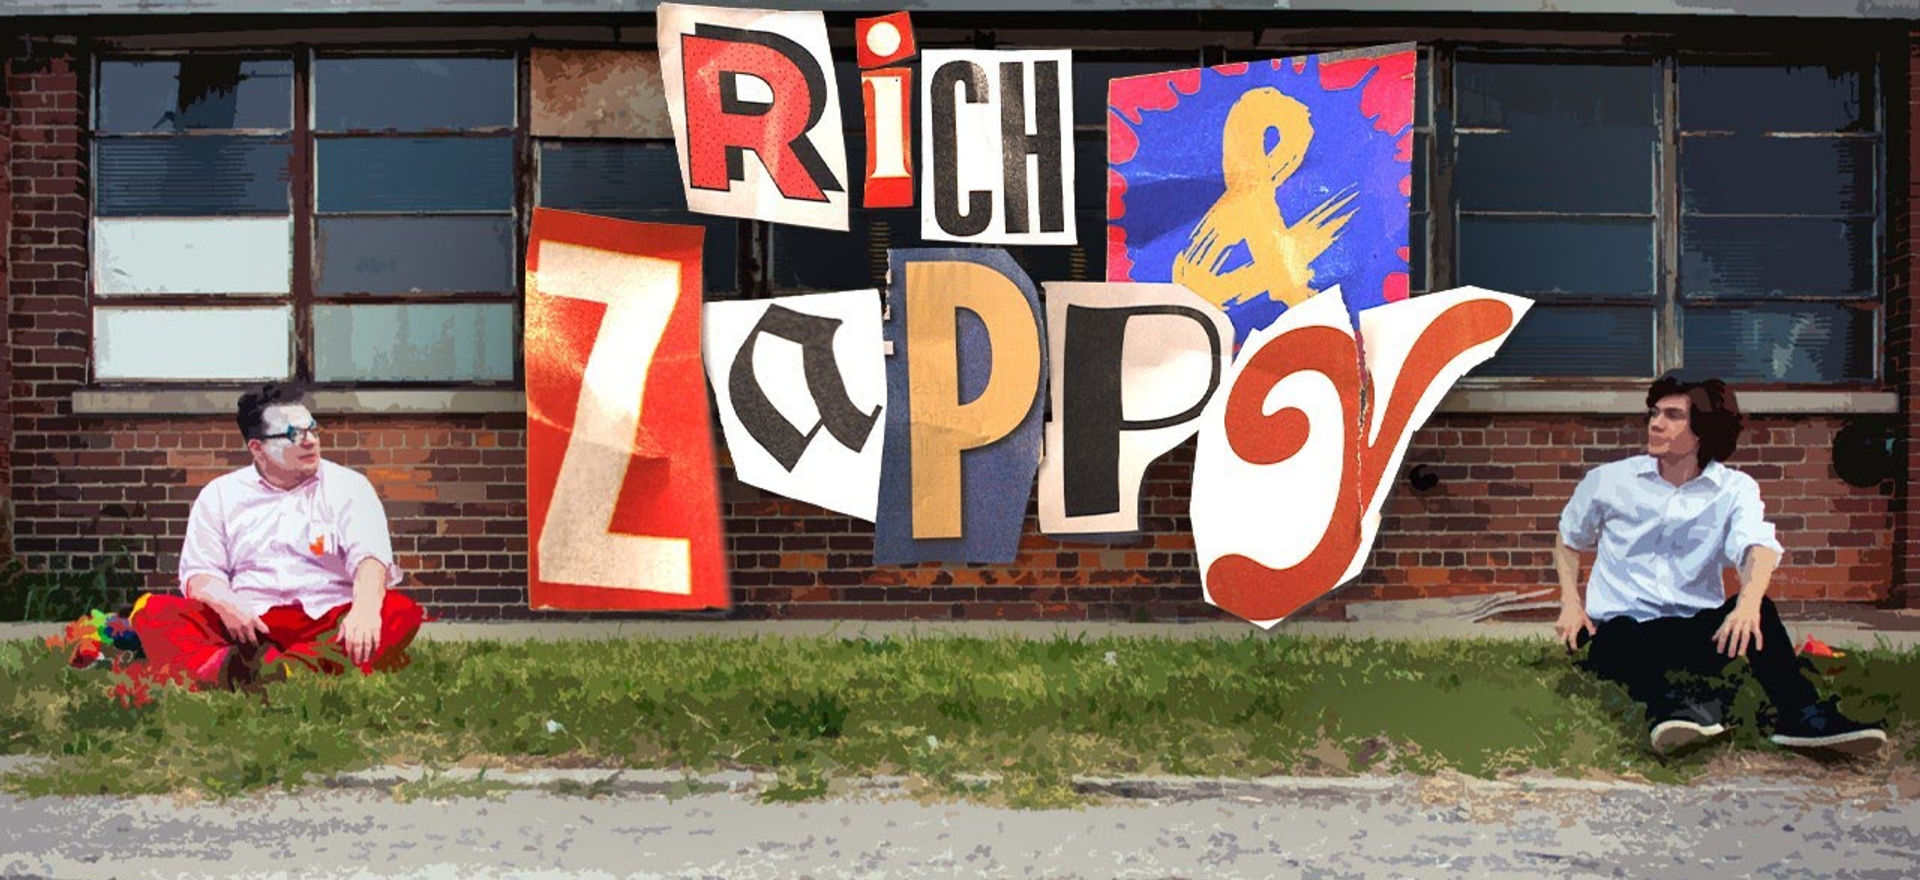 Rich and Zappy